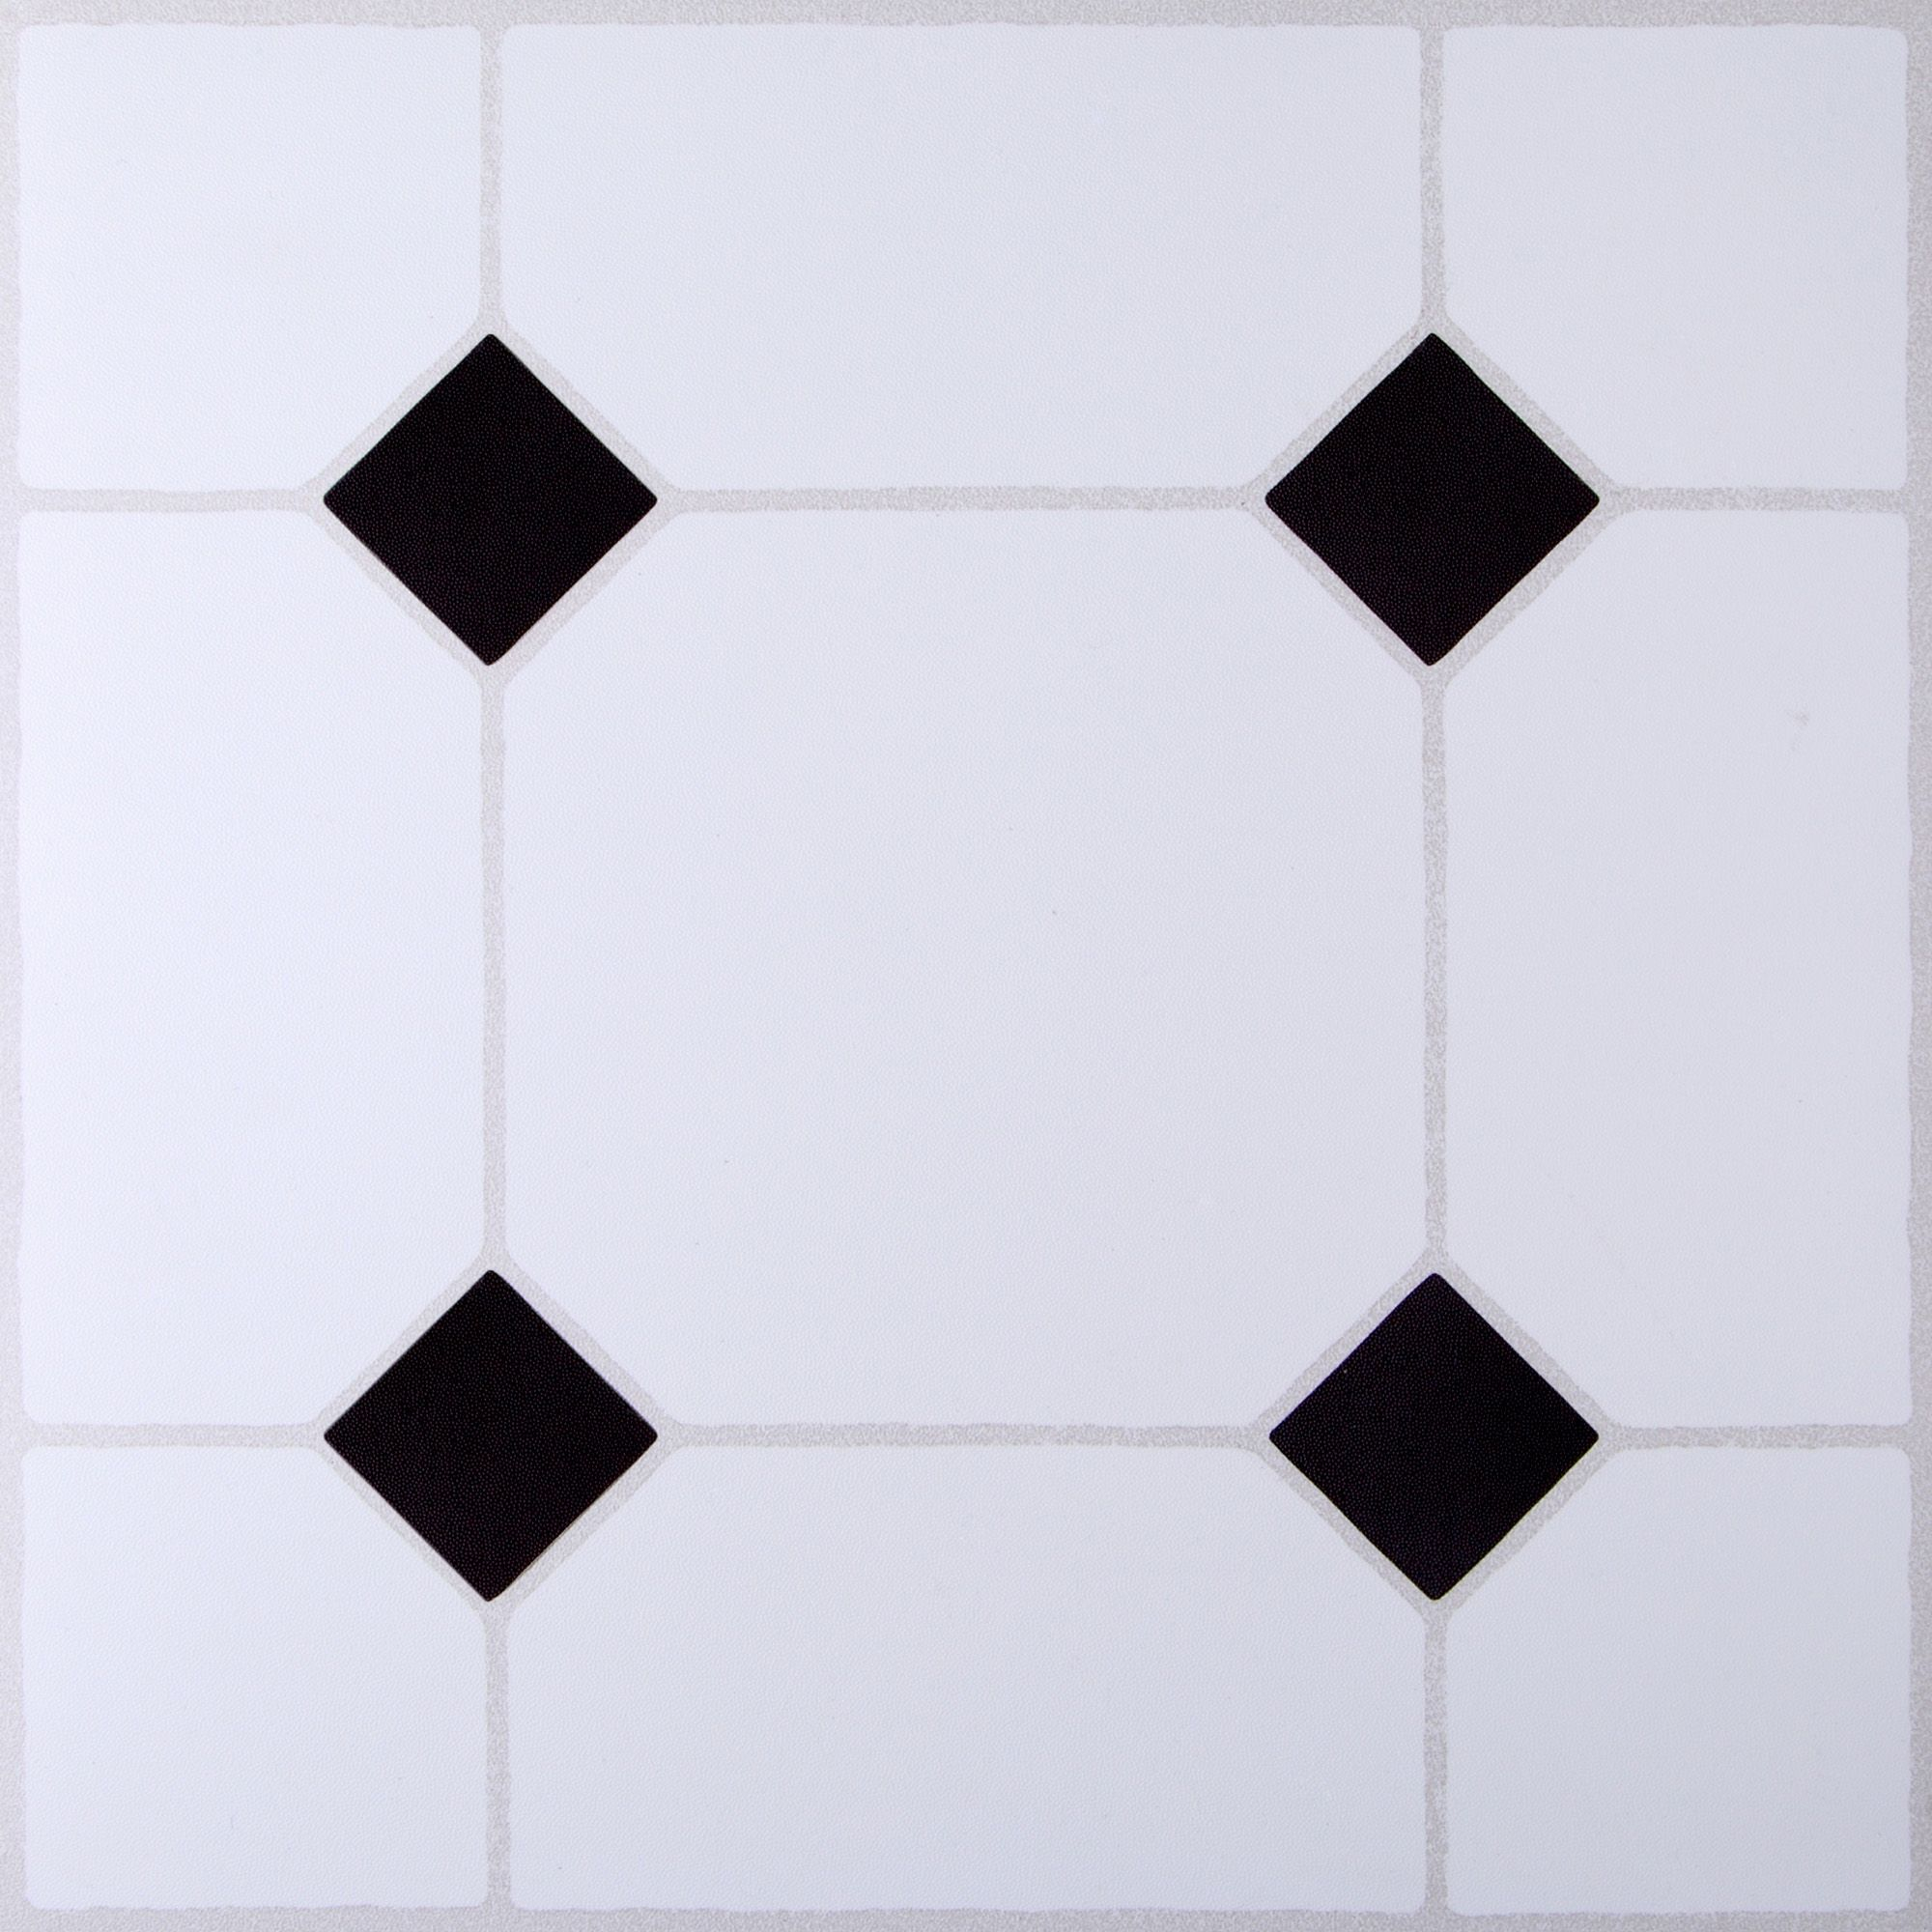 B Q Black White Tile Effect Self Adhesive Vinyl 1 02m² Pack Departments Diy At